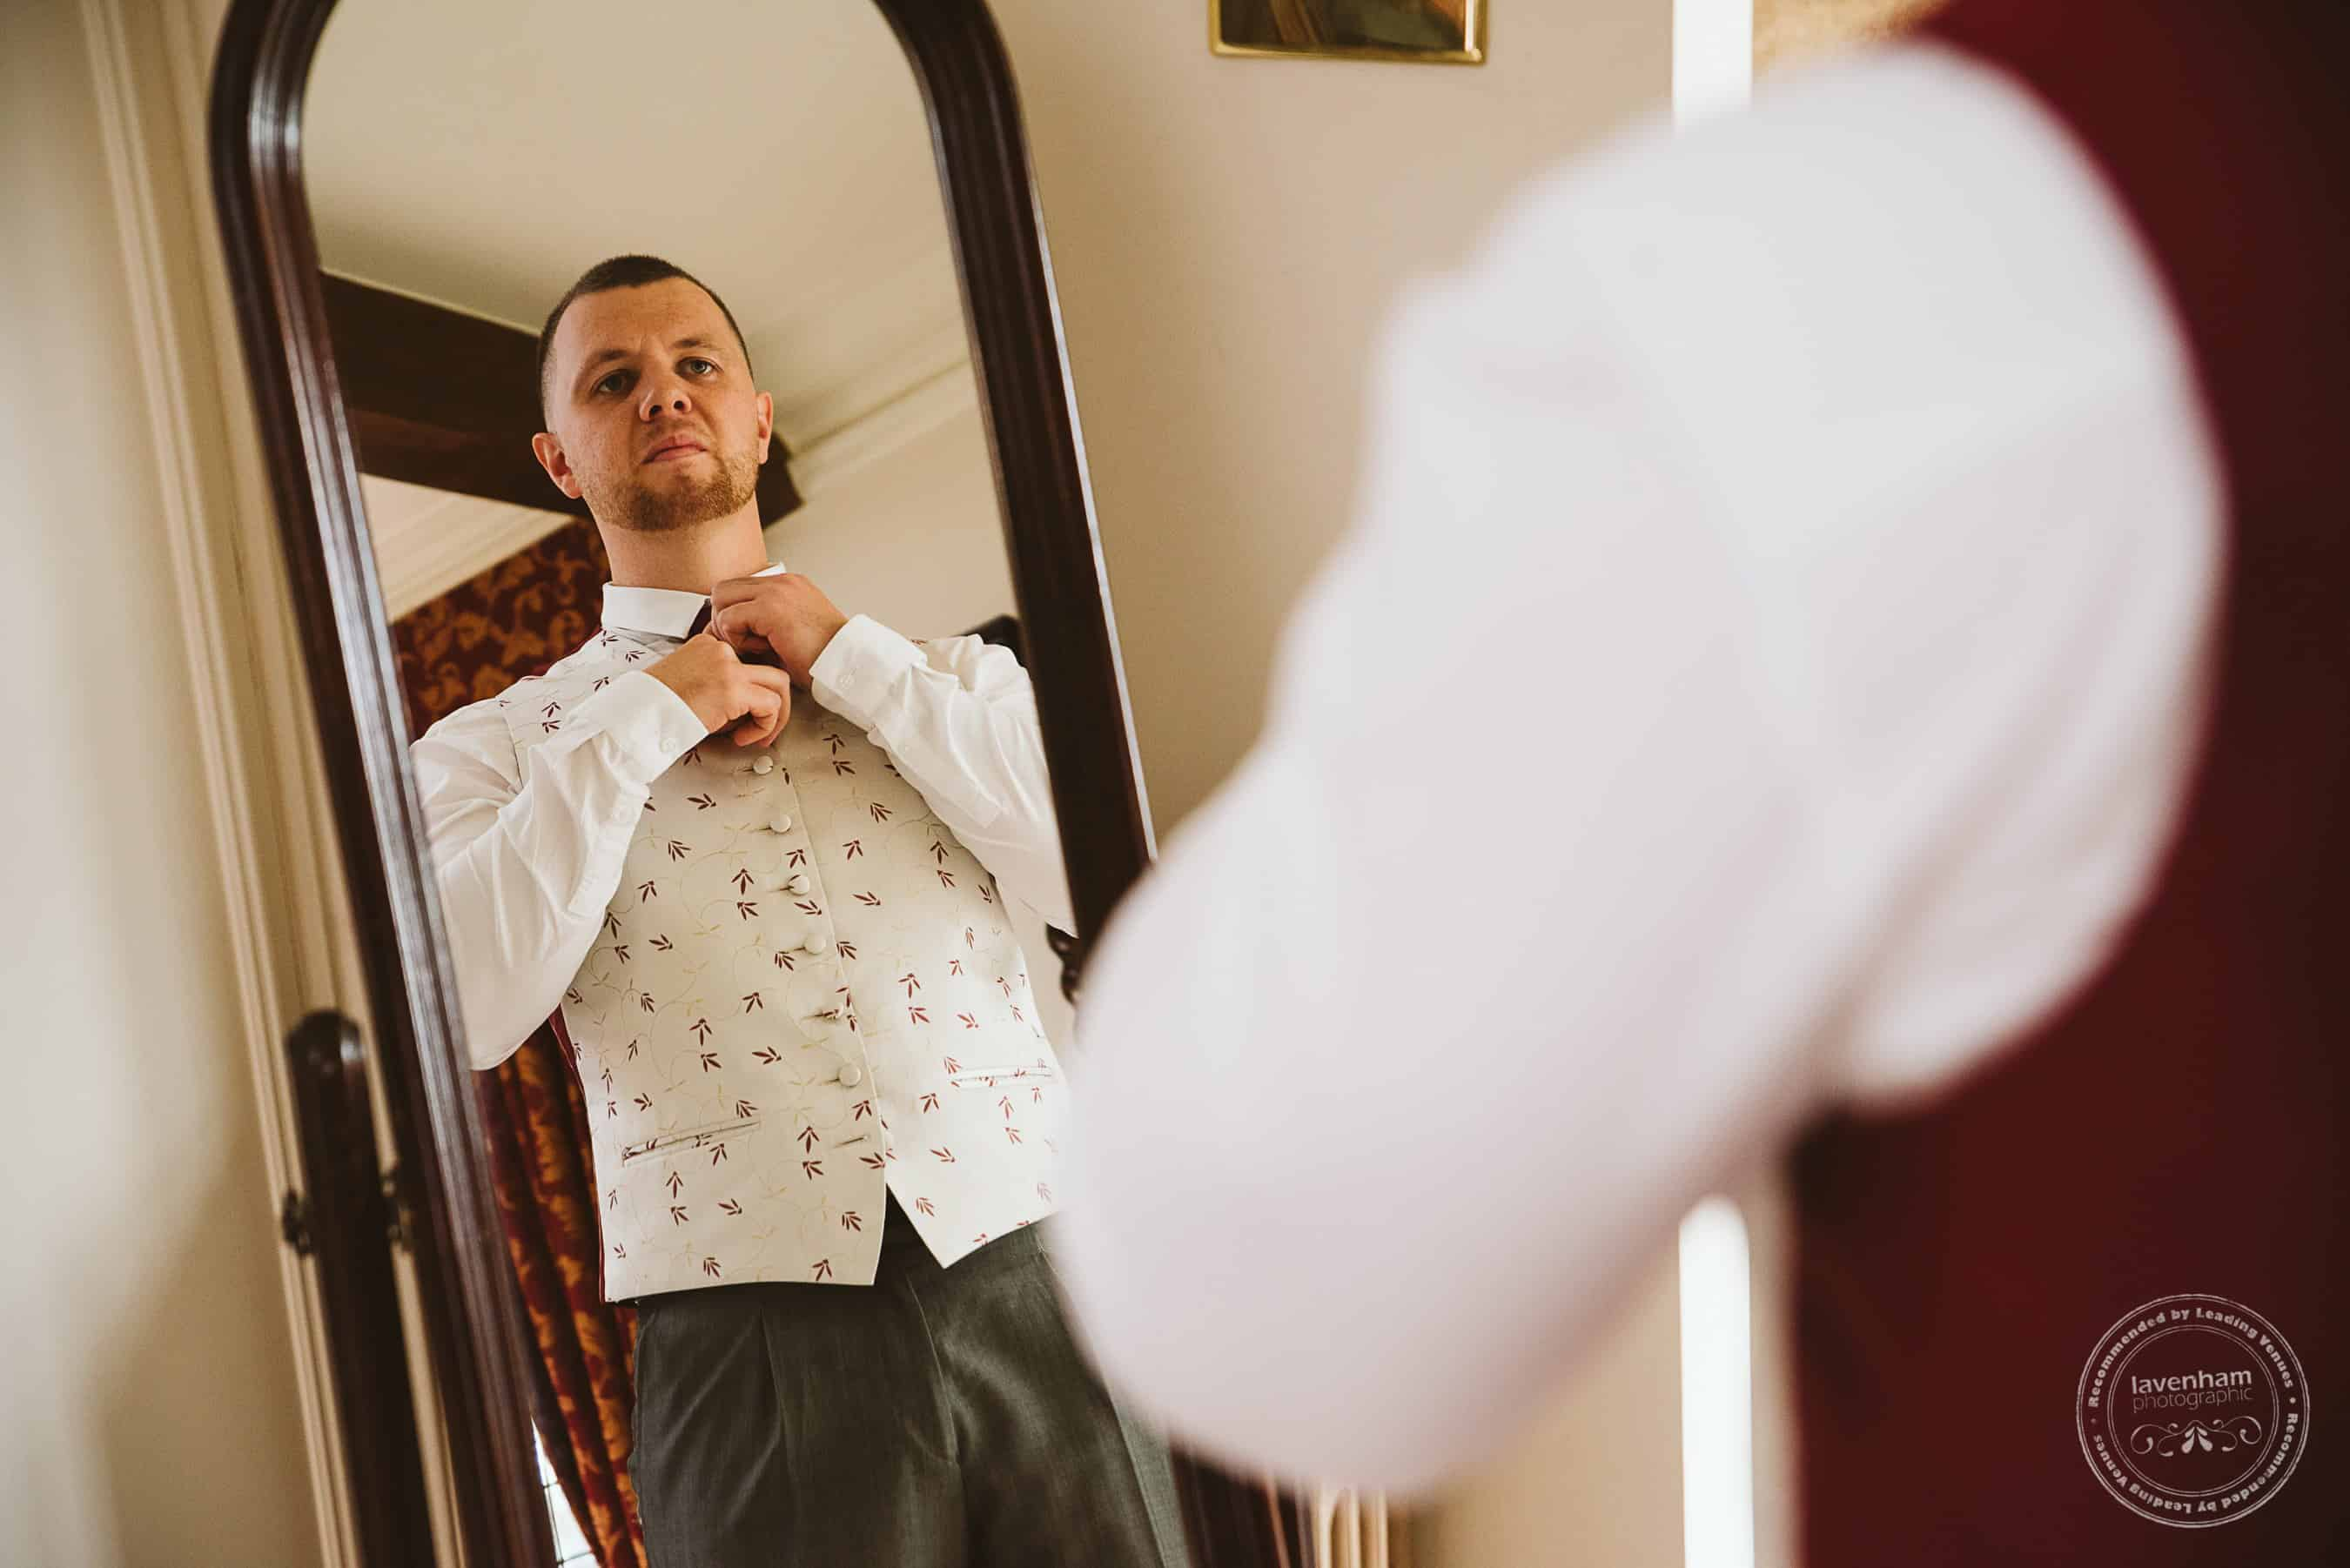 041118 Woodhall Manor Wedding Photography by Lavenham Photographic 015